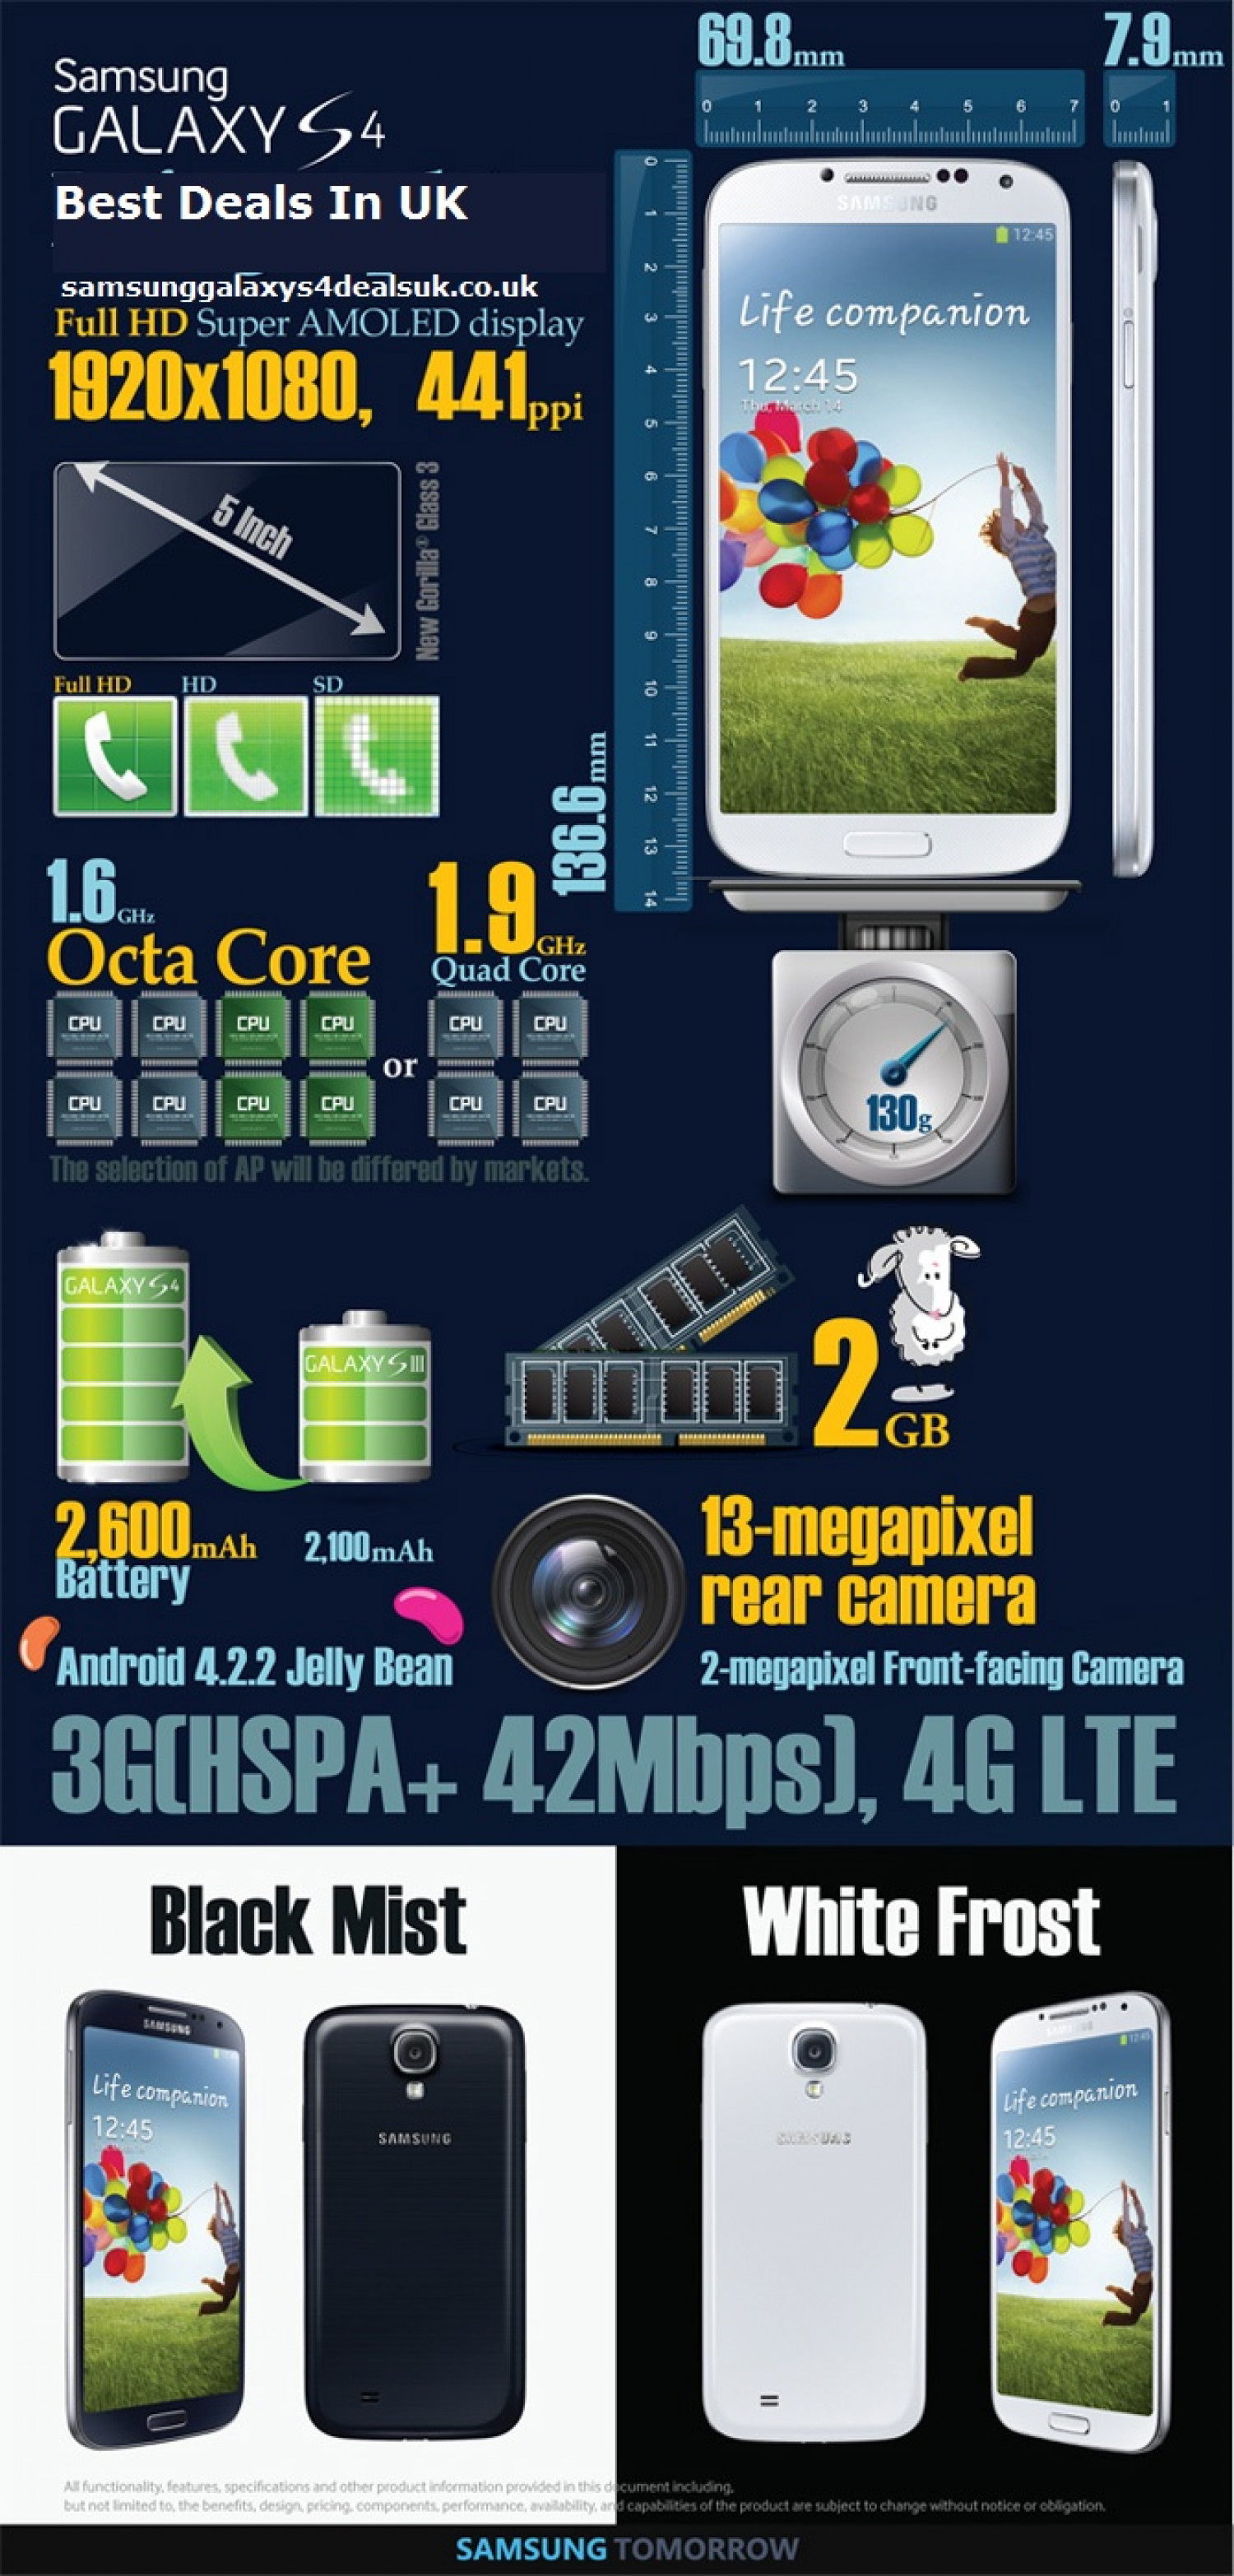 Best samsung galaxy s4 deals in uk Infographic